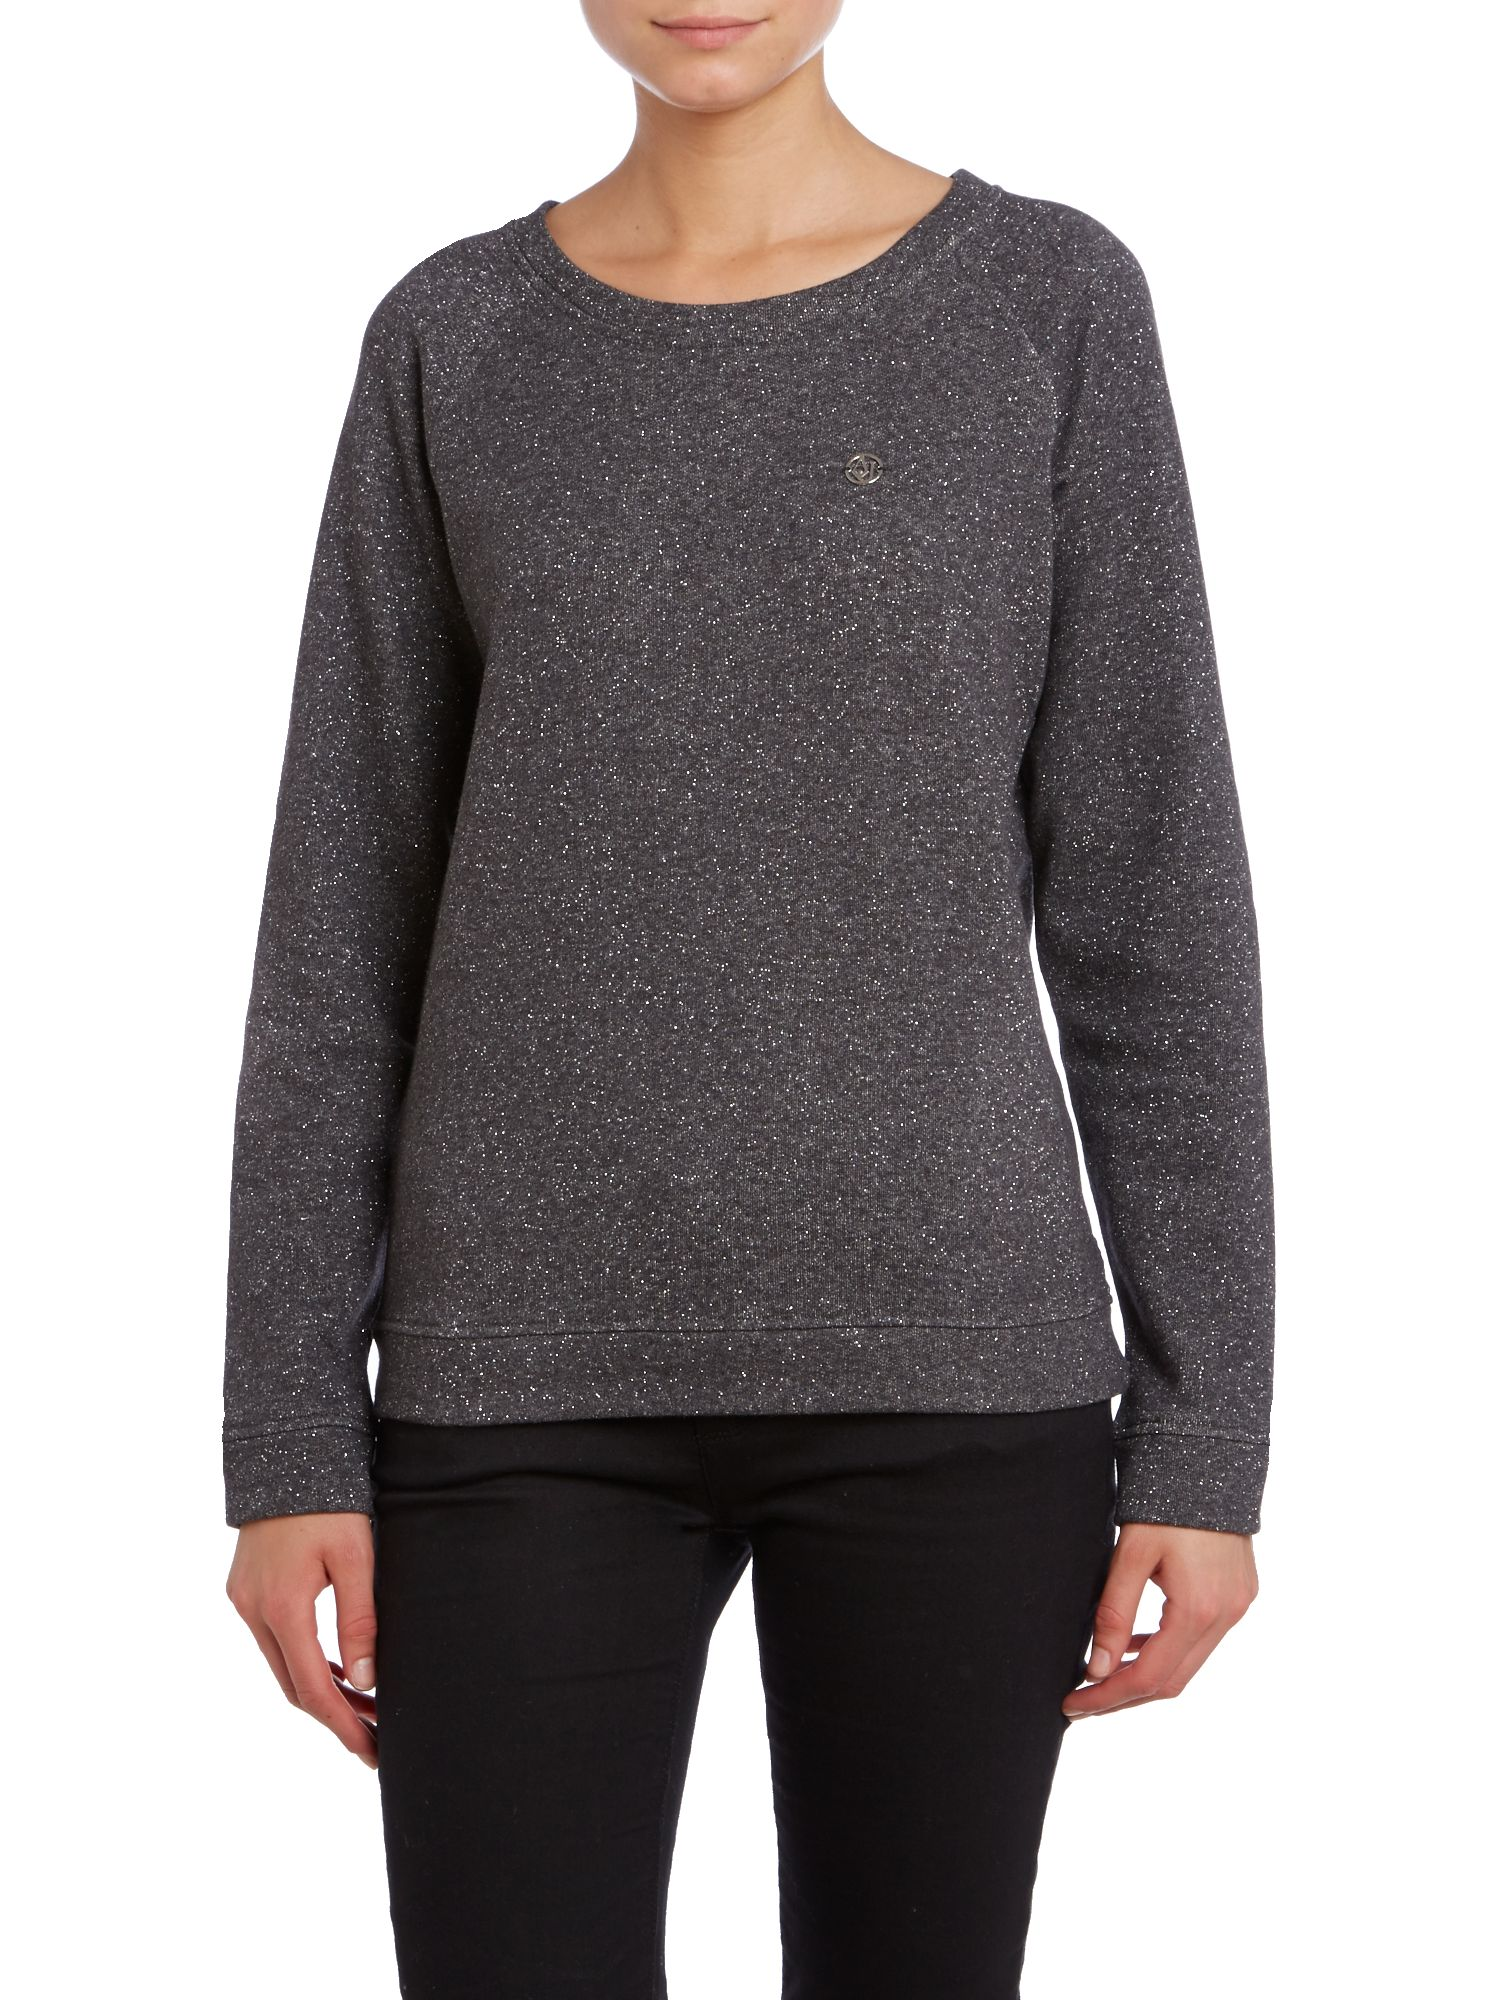 Long sleeve sparkle sweat top